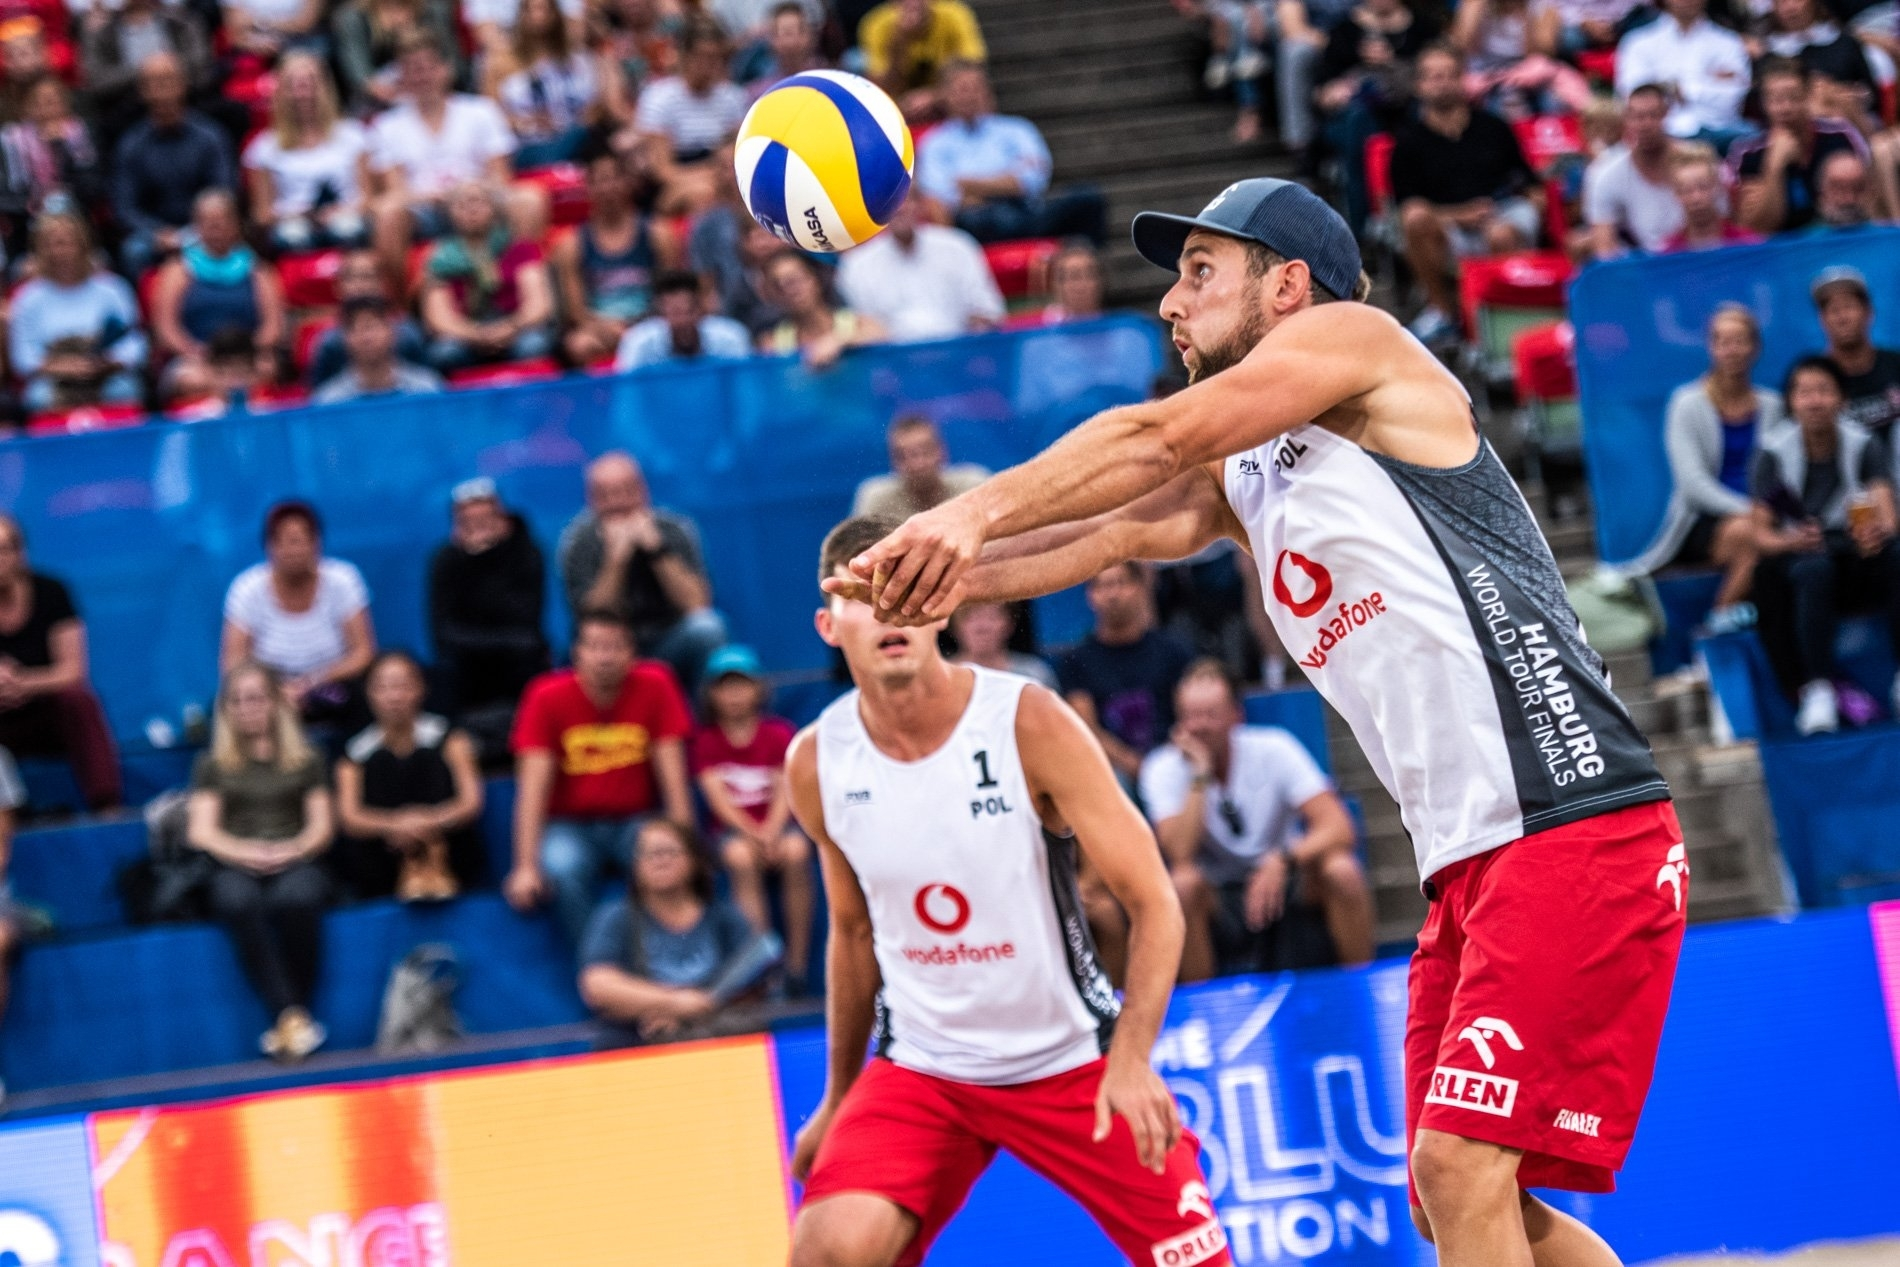 Grzegorz (with the ball) and Michal are in the Hamburg Finals elimination phase